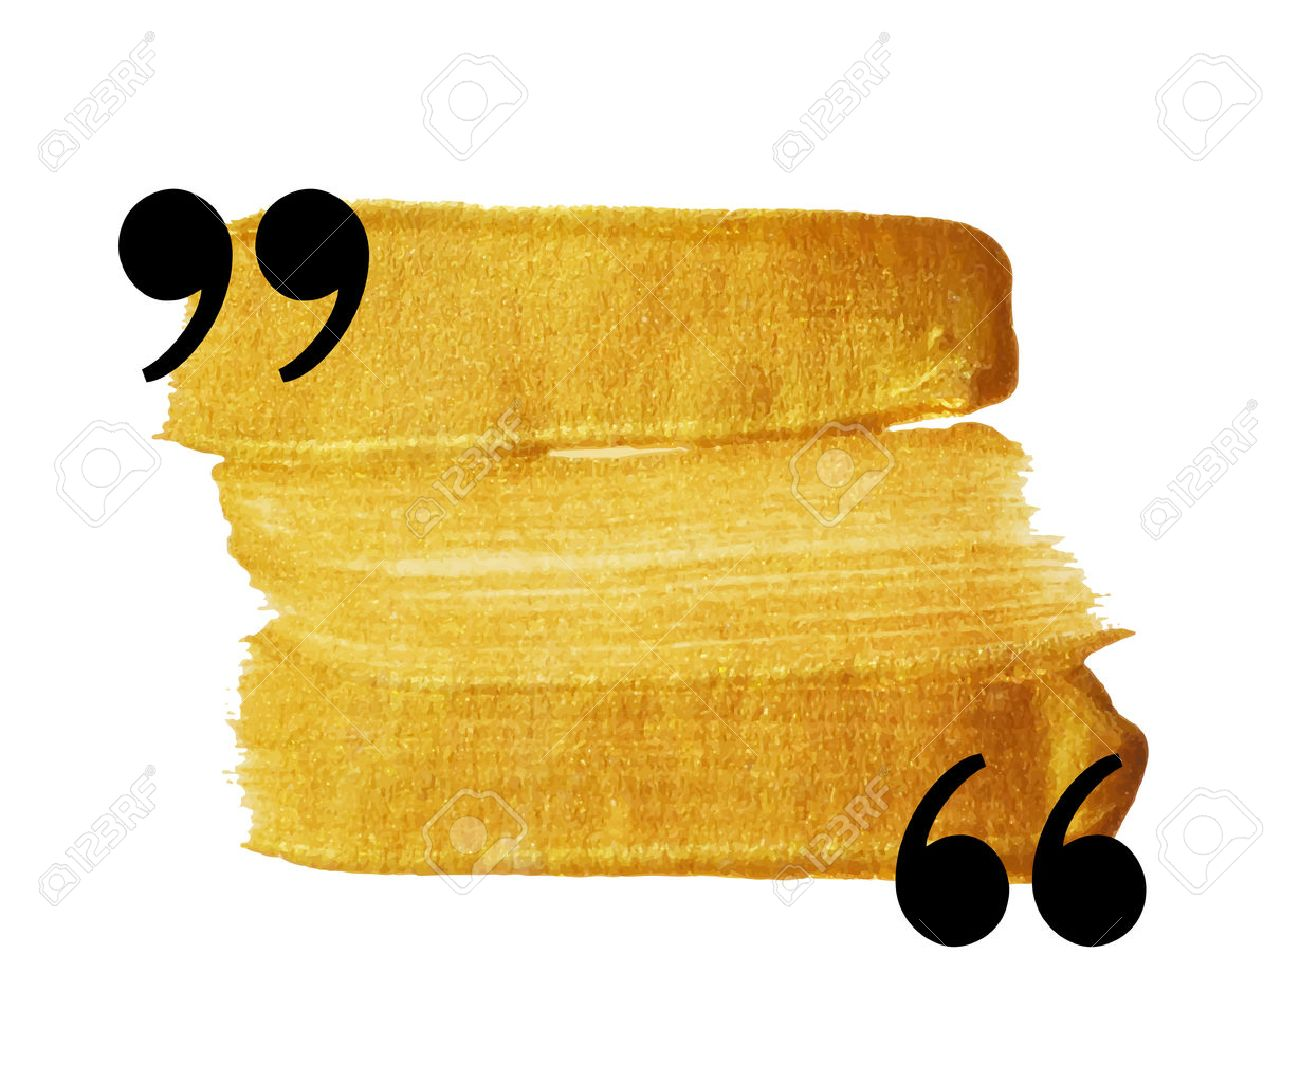 gold stain quotation mark speech bubble empty quote blank citation